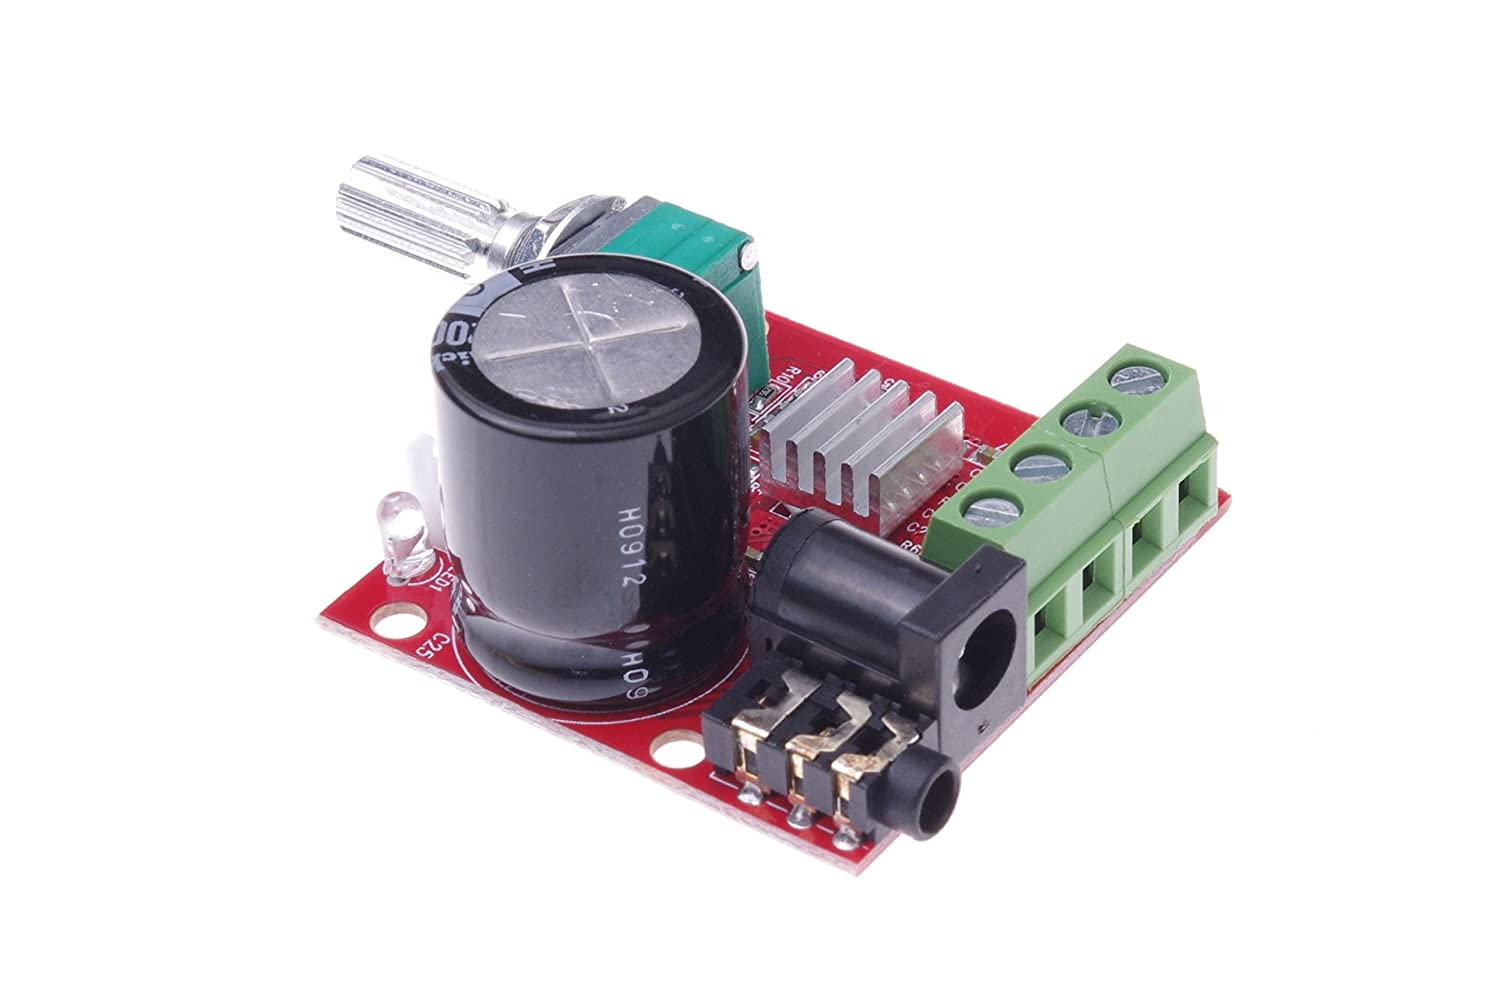 Smakn Mini Pc Digital Stereo Audio Amplifier Module 10w Hifi Power Amp Circuit Lm3886tf Small 2 Channel Class D 12 V Dc Home Theater